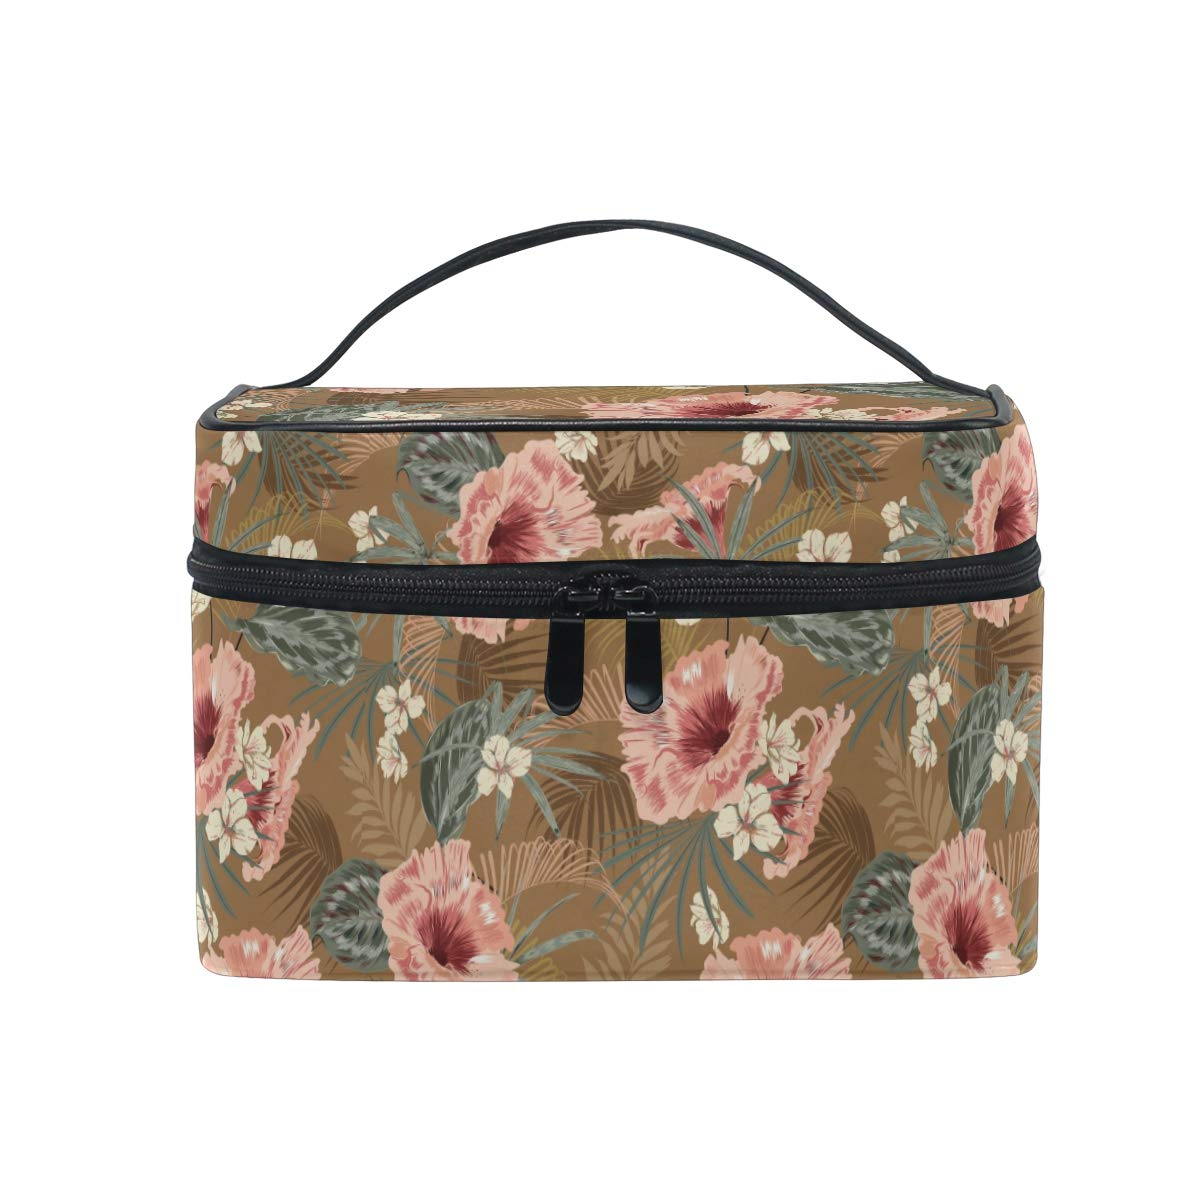 Retro Tropical Flower Leaves Women Makeup Bag Travel Cosmetic Bags Toiletry Train Case Beauty Pouch Organizer